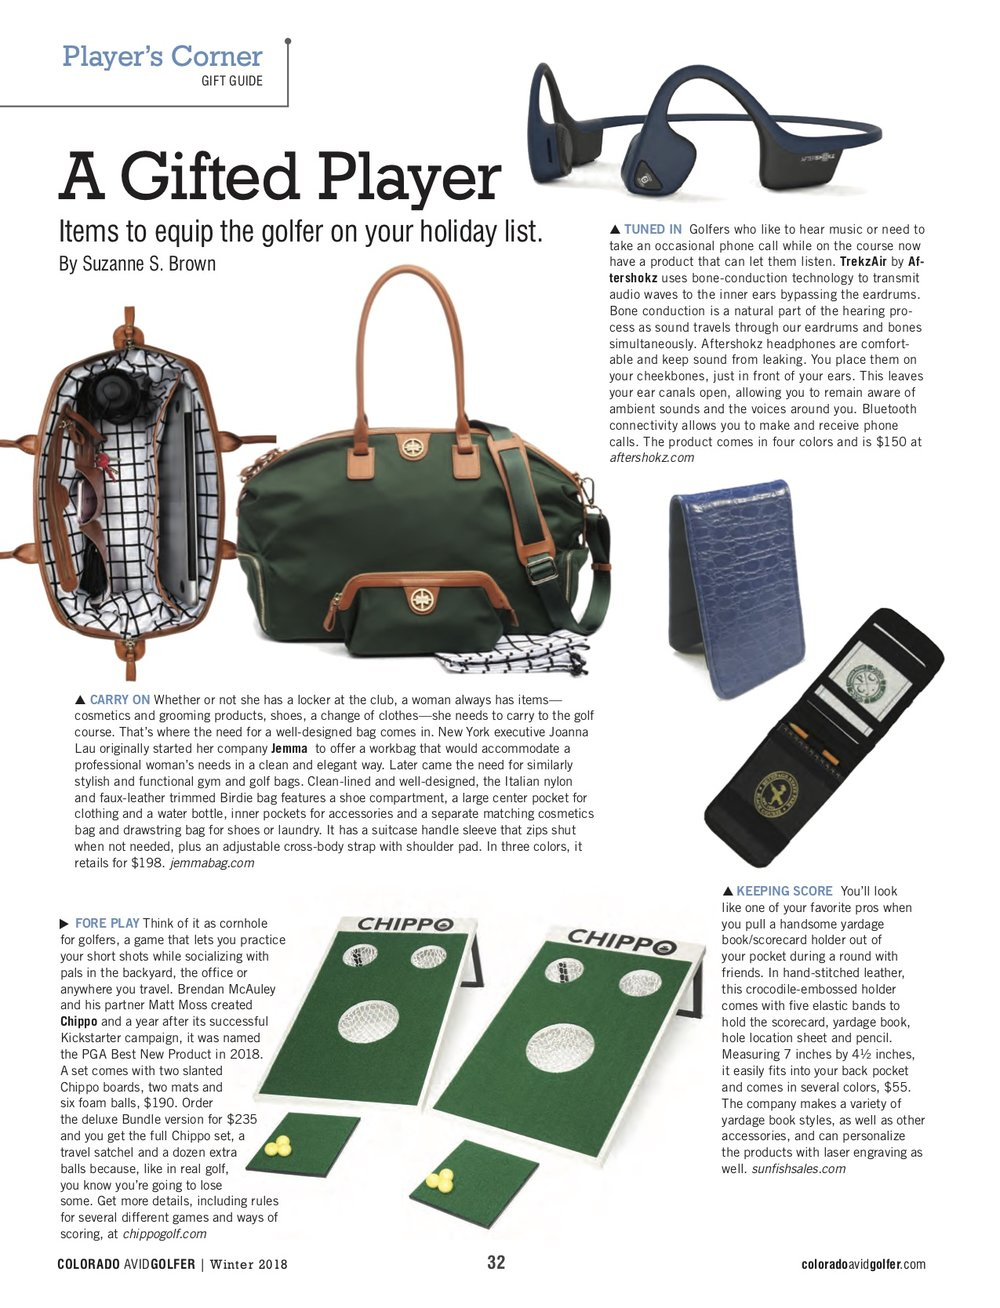 We came up with some fun gift ideas for golfers in  latest issue of Colorado Avid Golfer  magazine.